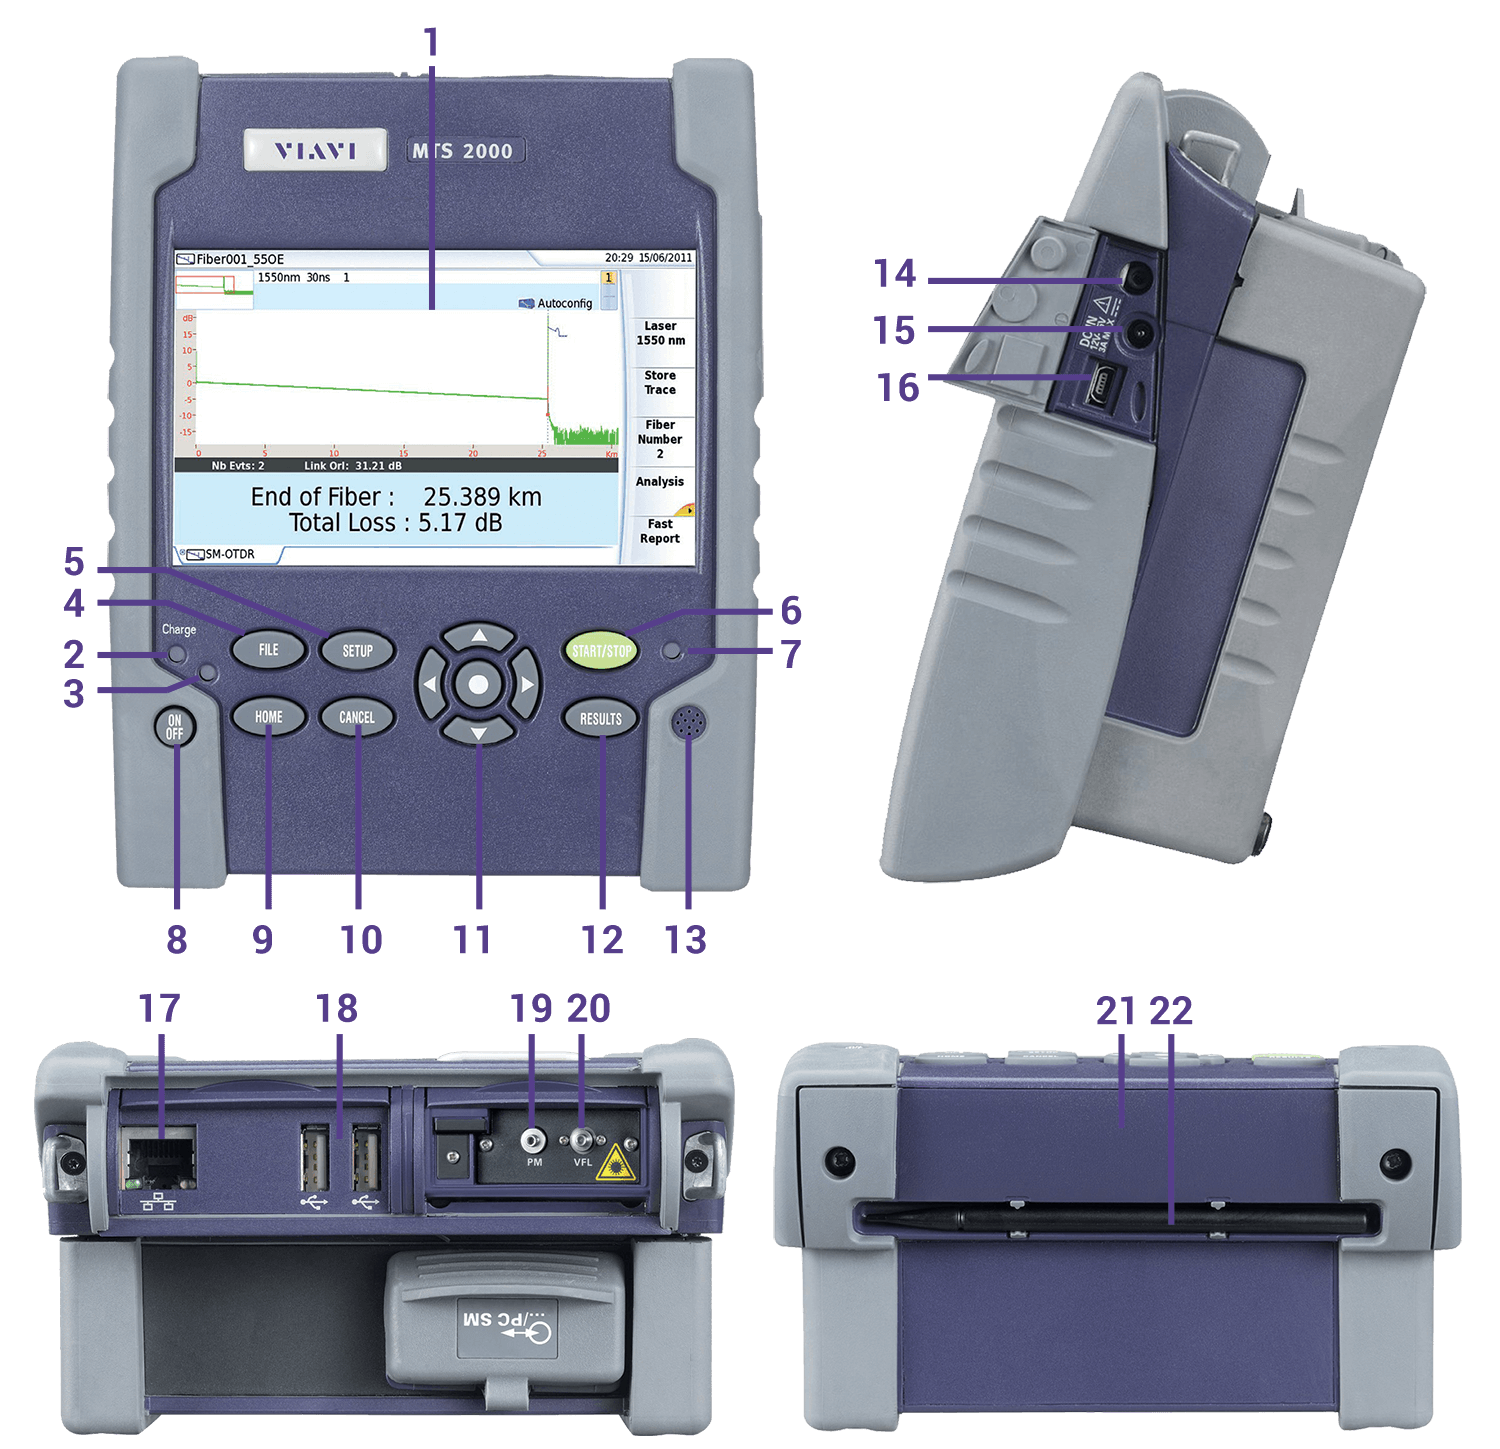 Details of VIAVI MTS-2000 Handheld Fiber Optic Modular OTDR Test Device